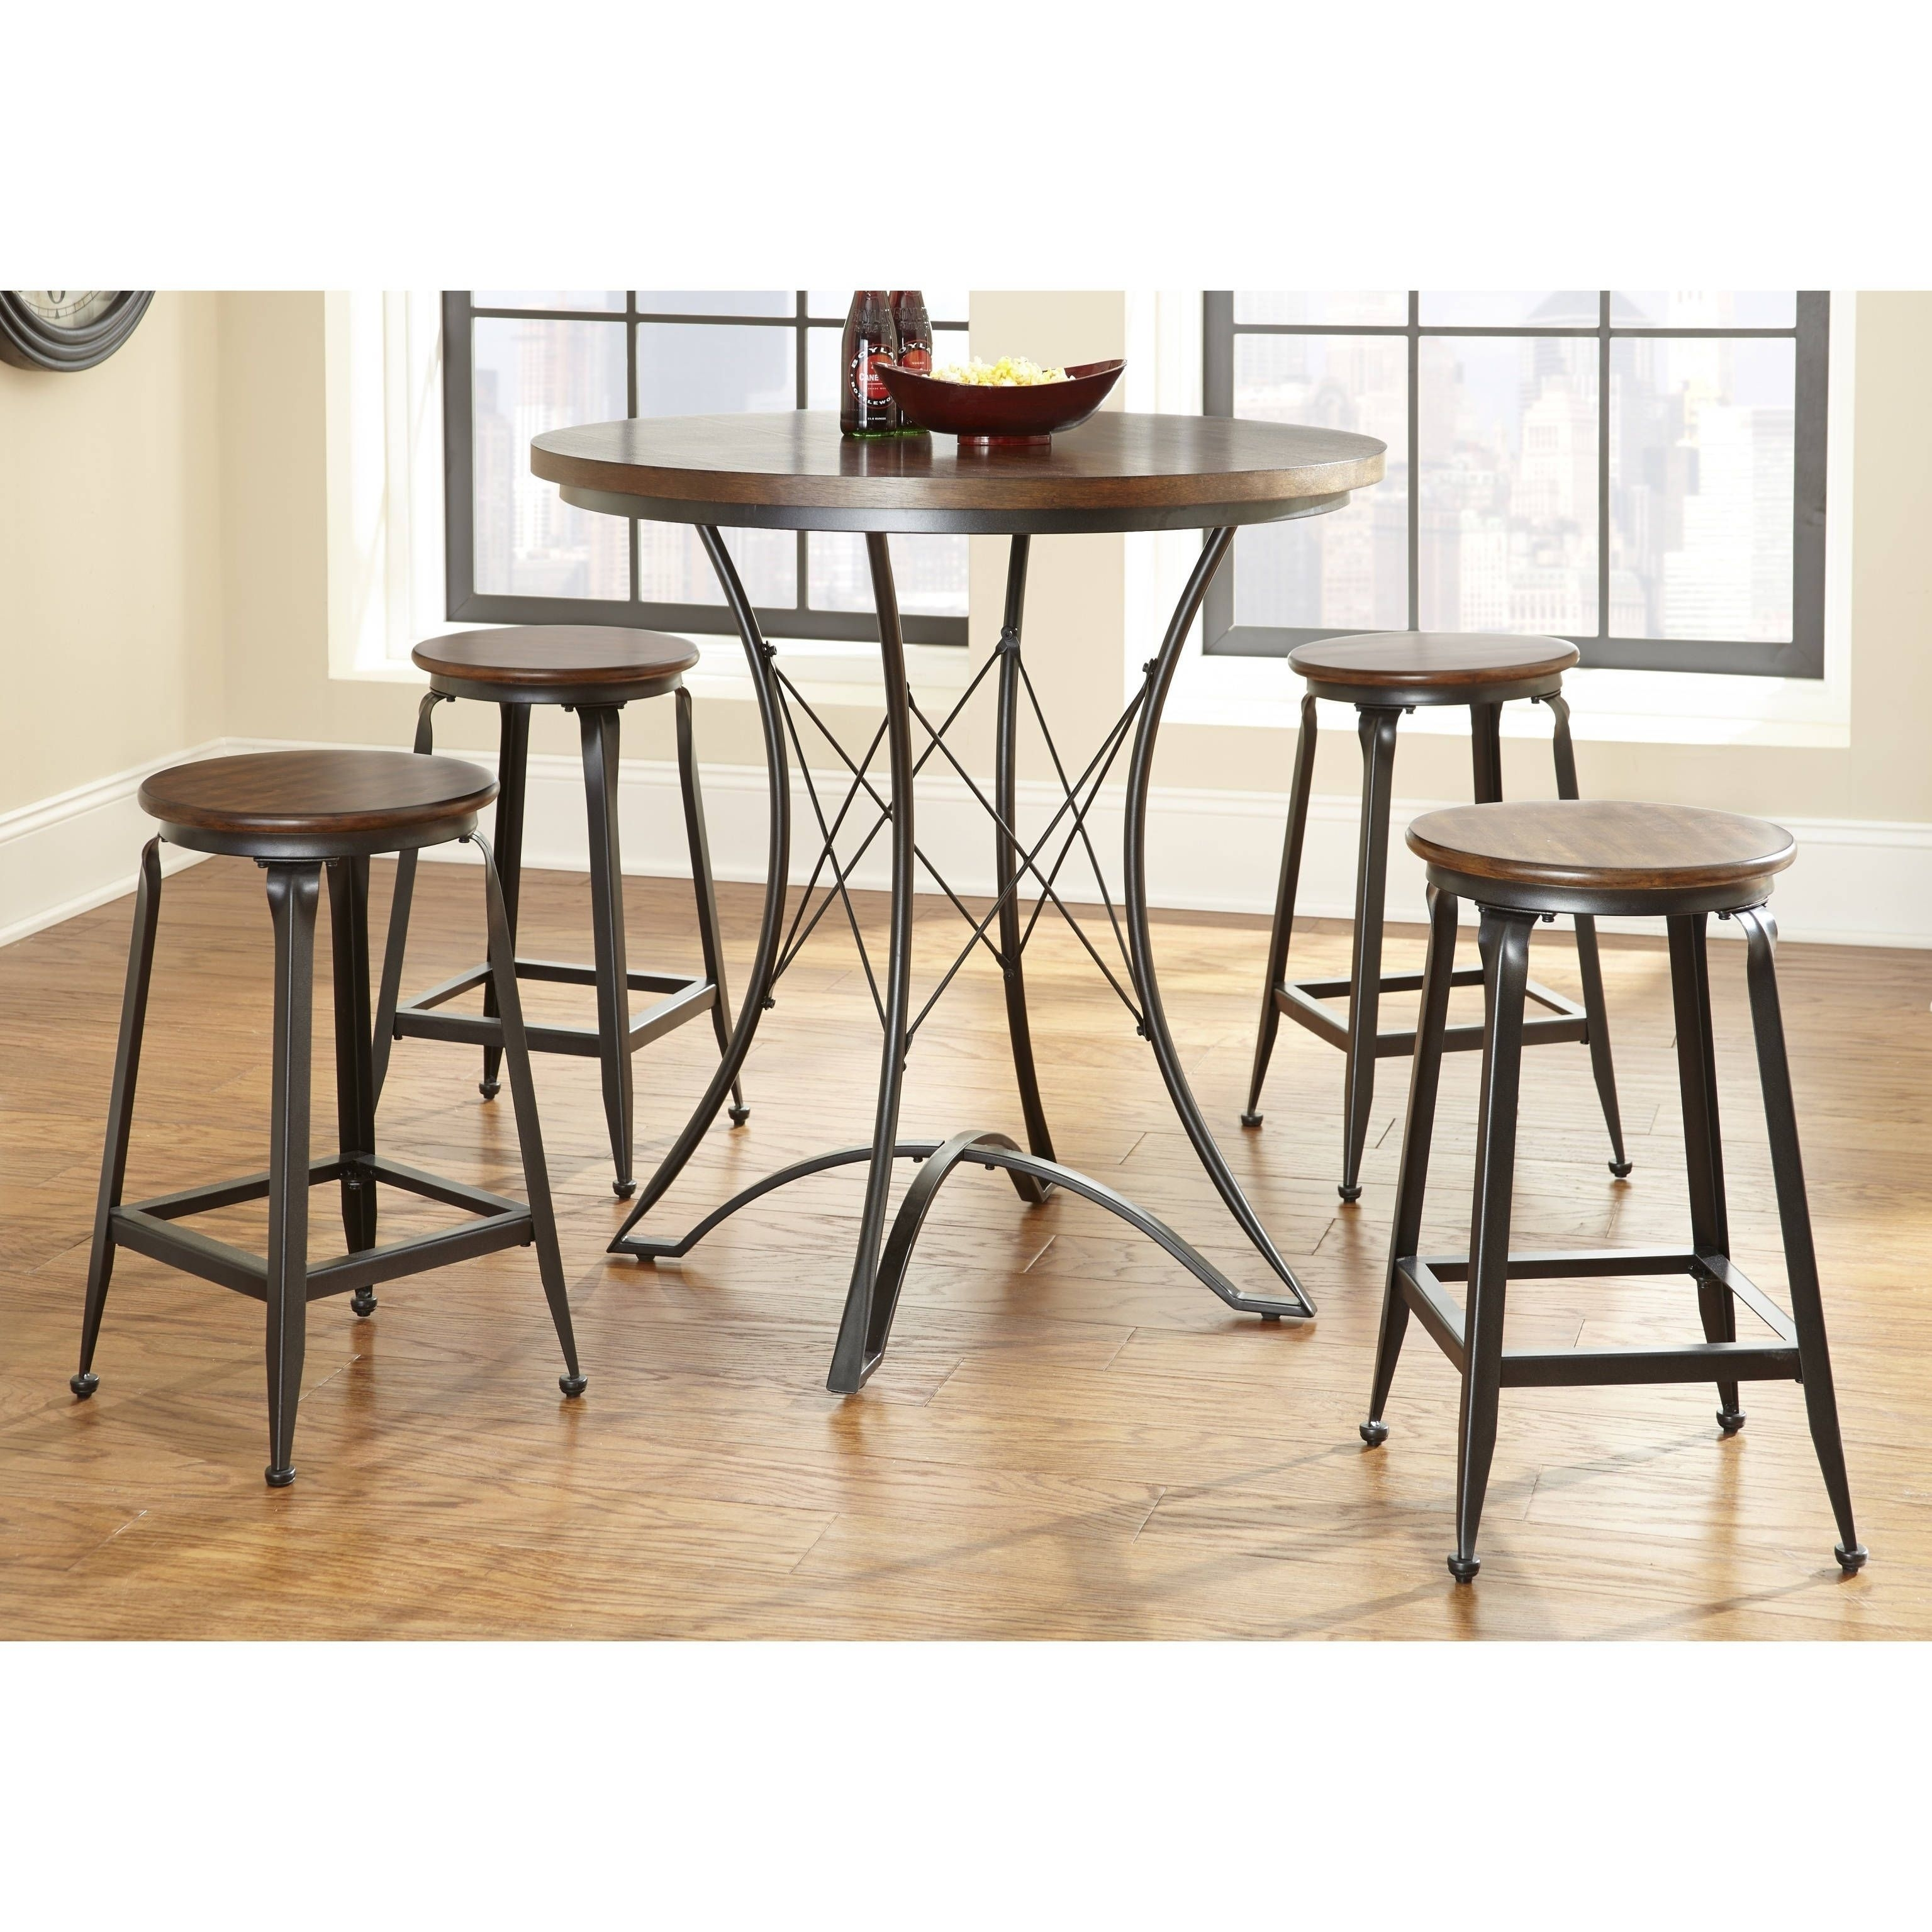 Greyson Living Abella Counter Height Pub Table Set (Abella Counter Throughout Most Popular Harper 5 Piece Counter Sets (View 13 of 20)